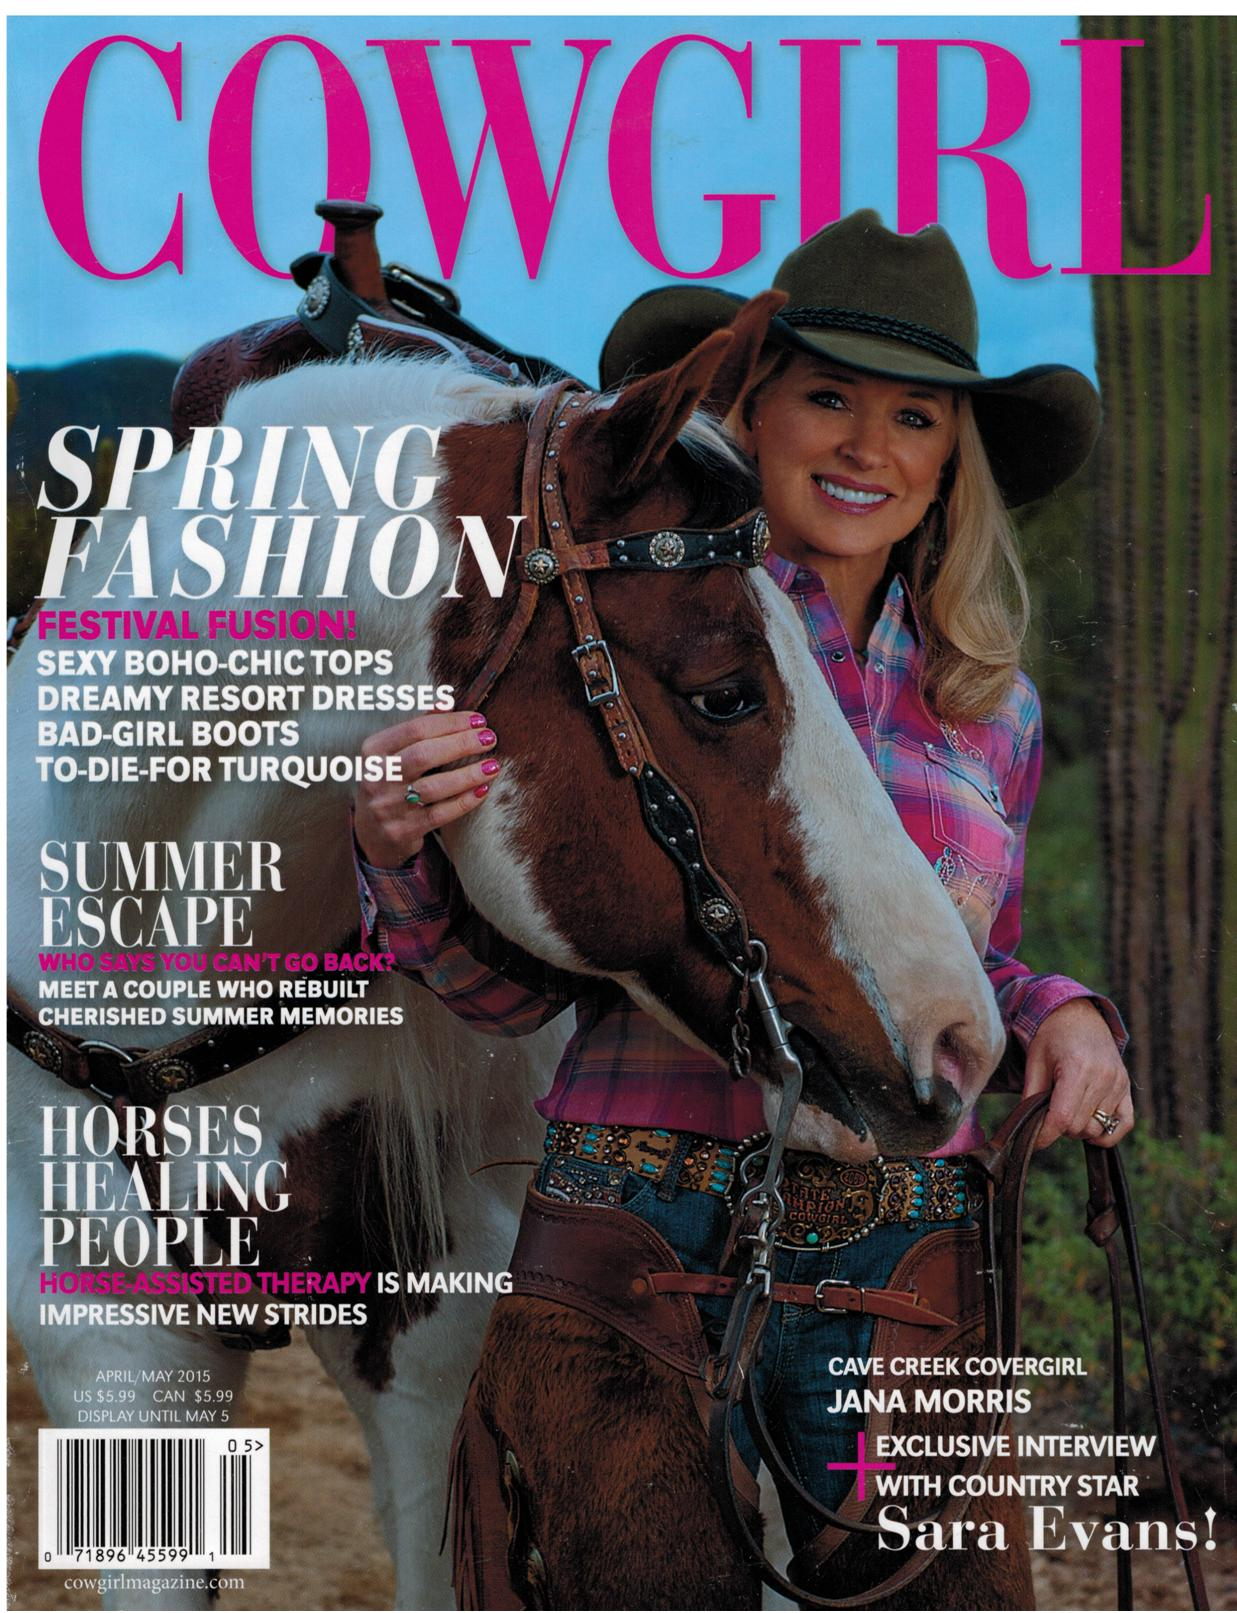 14 Cowgirl Magazine - April-May 2015.jpg